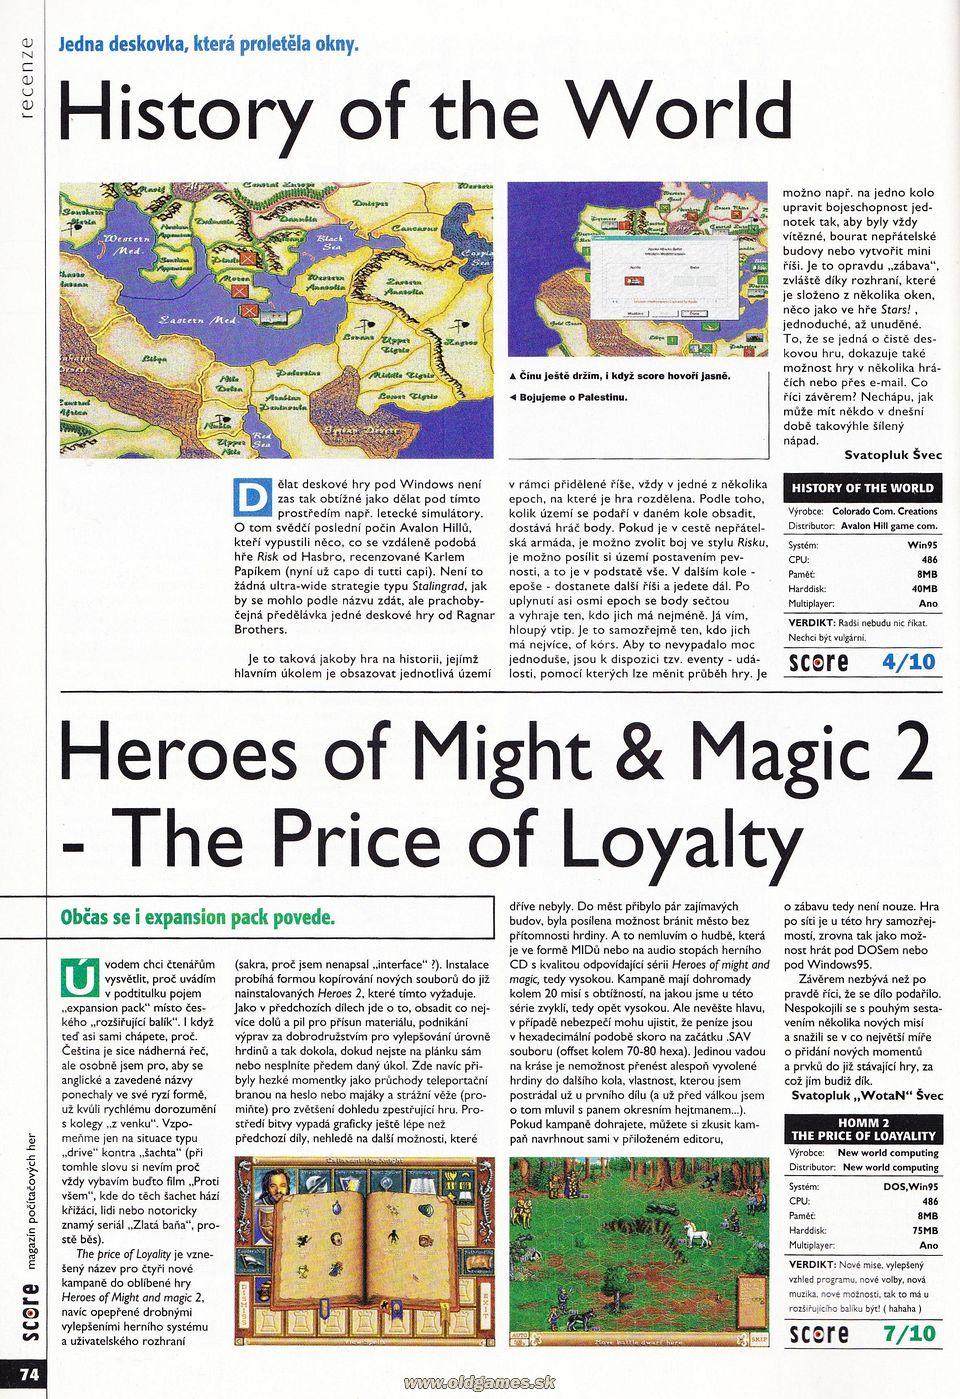 History of the World, HoMaM 2: The Price of Loyalty